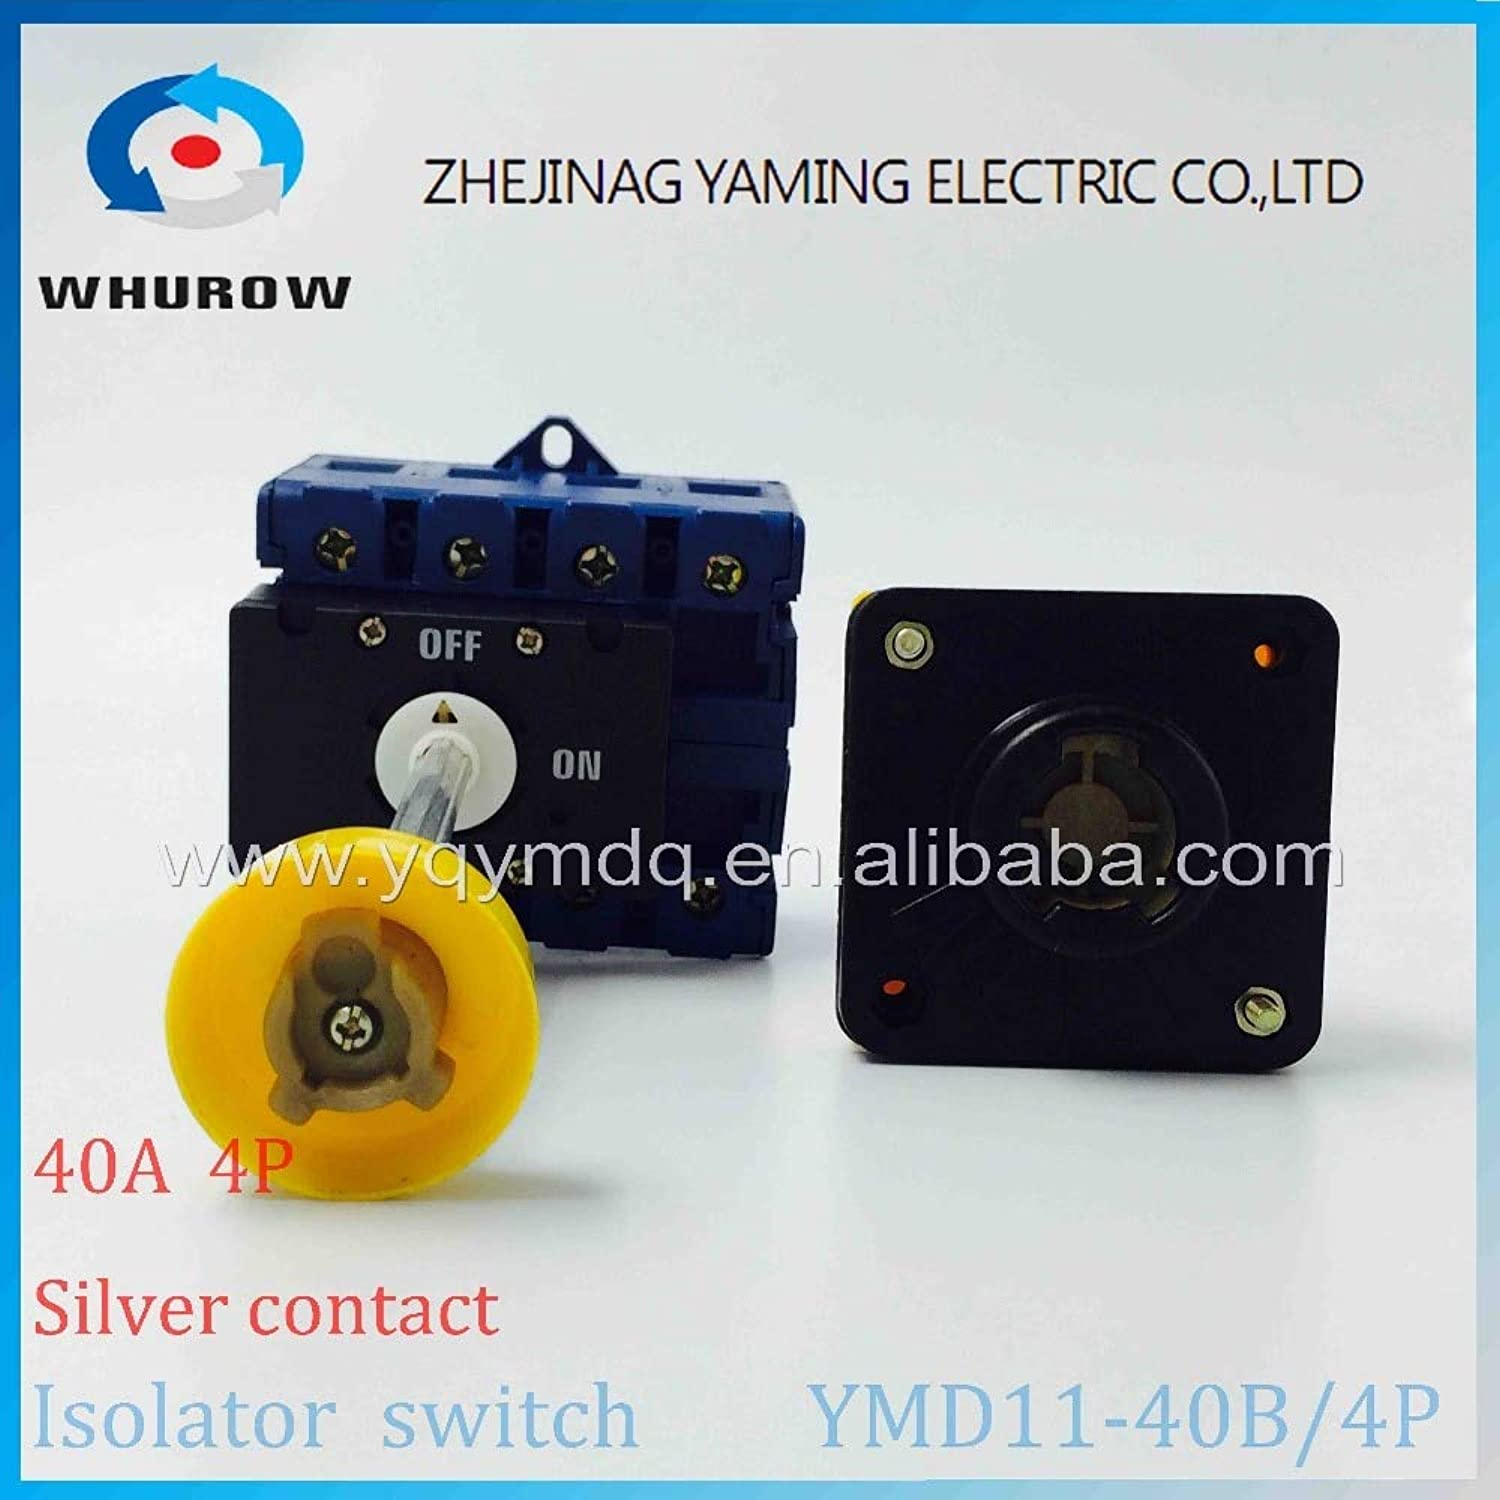 Isolator Switch YMD1140B 4P 690V with Padlock Aluminum Pole 40A Load Break Power Cut Off Operation Outside Electrical Cabinet